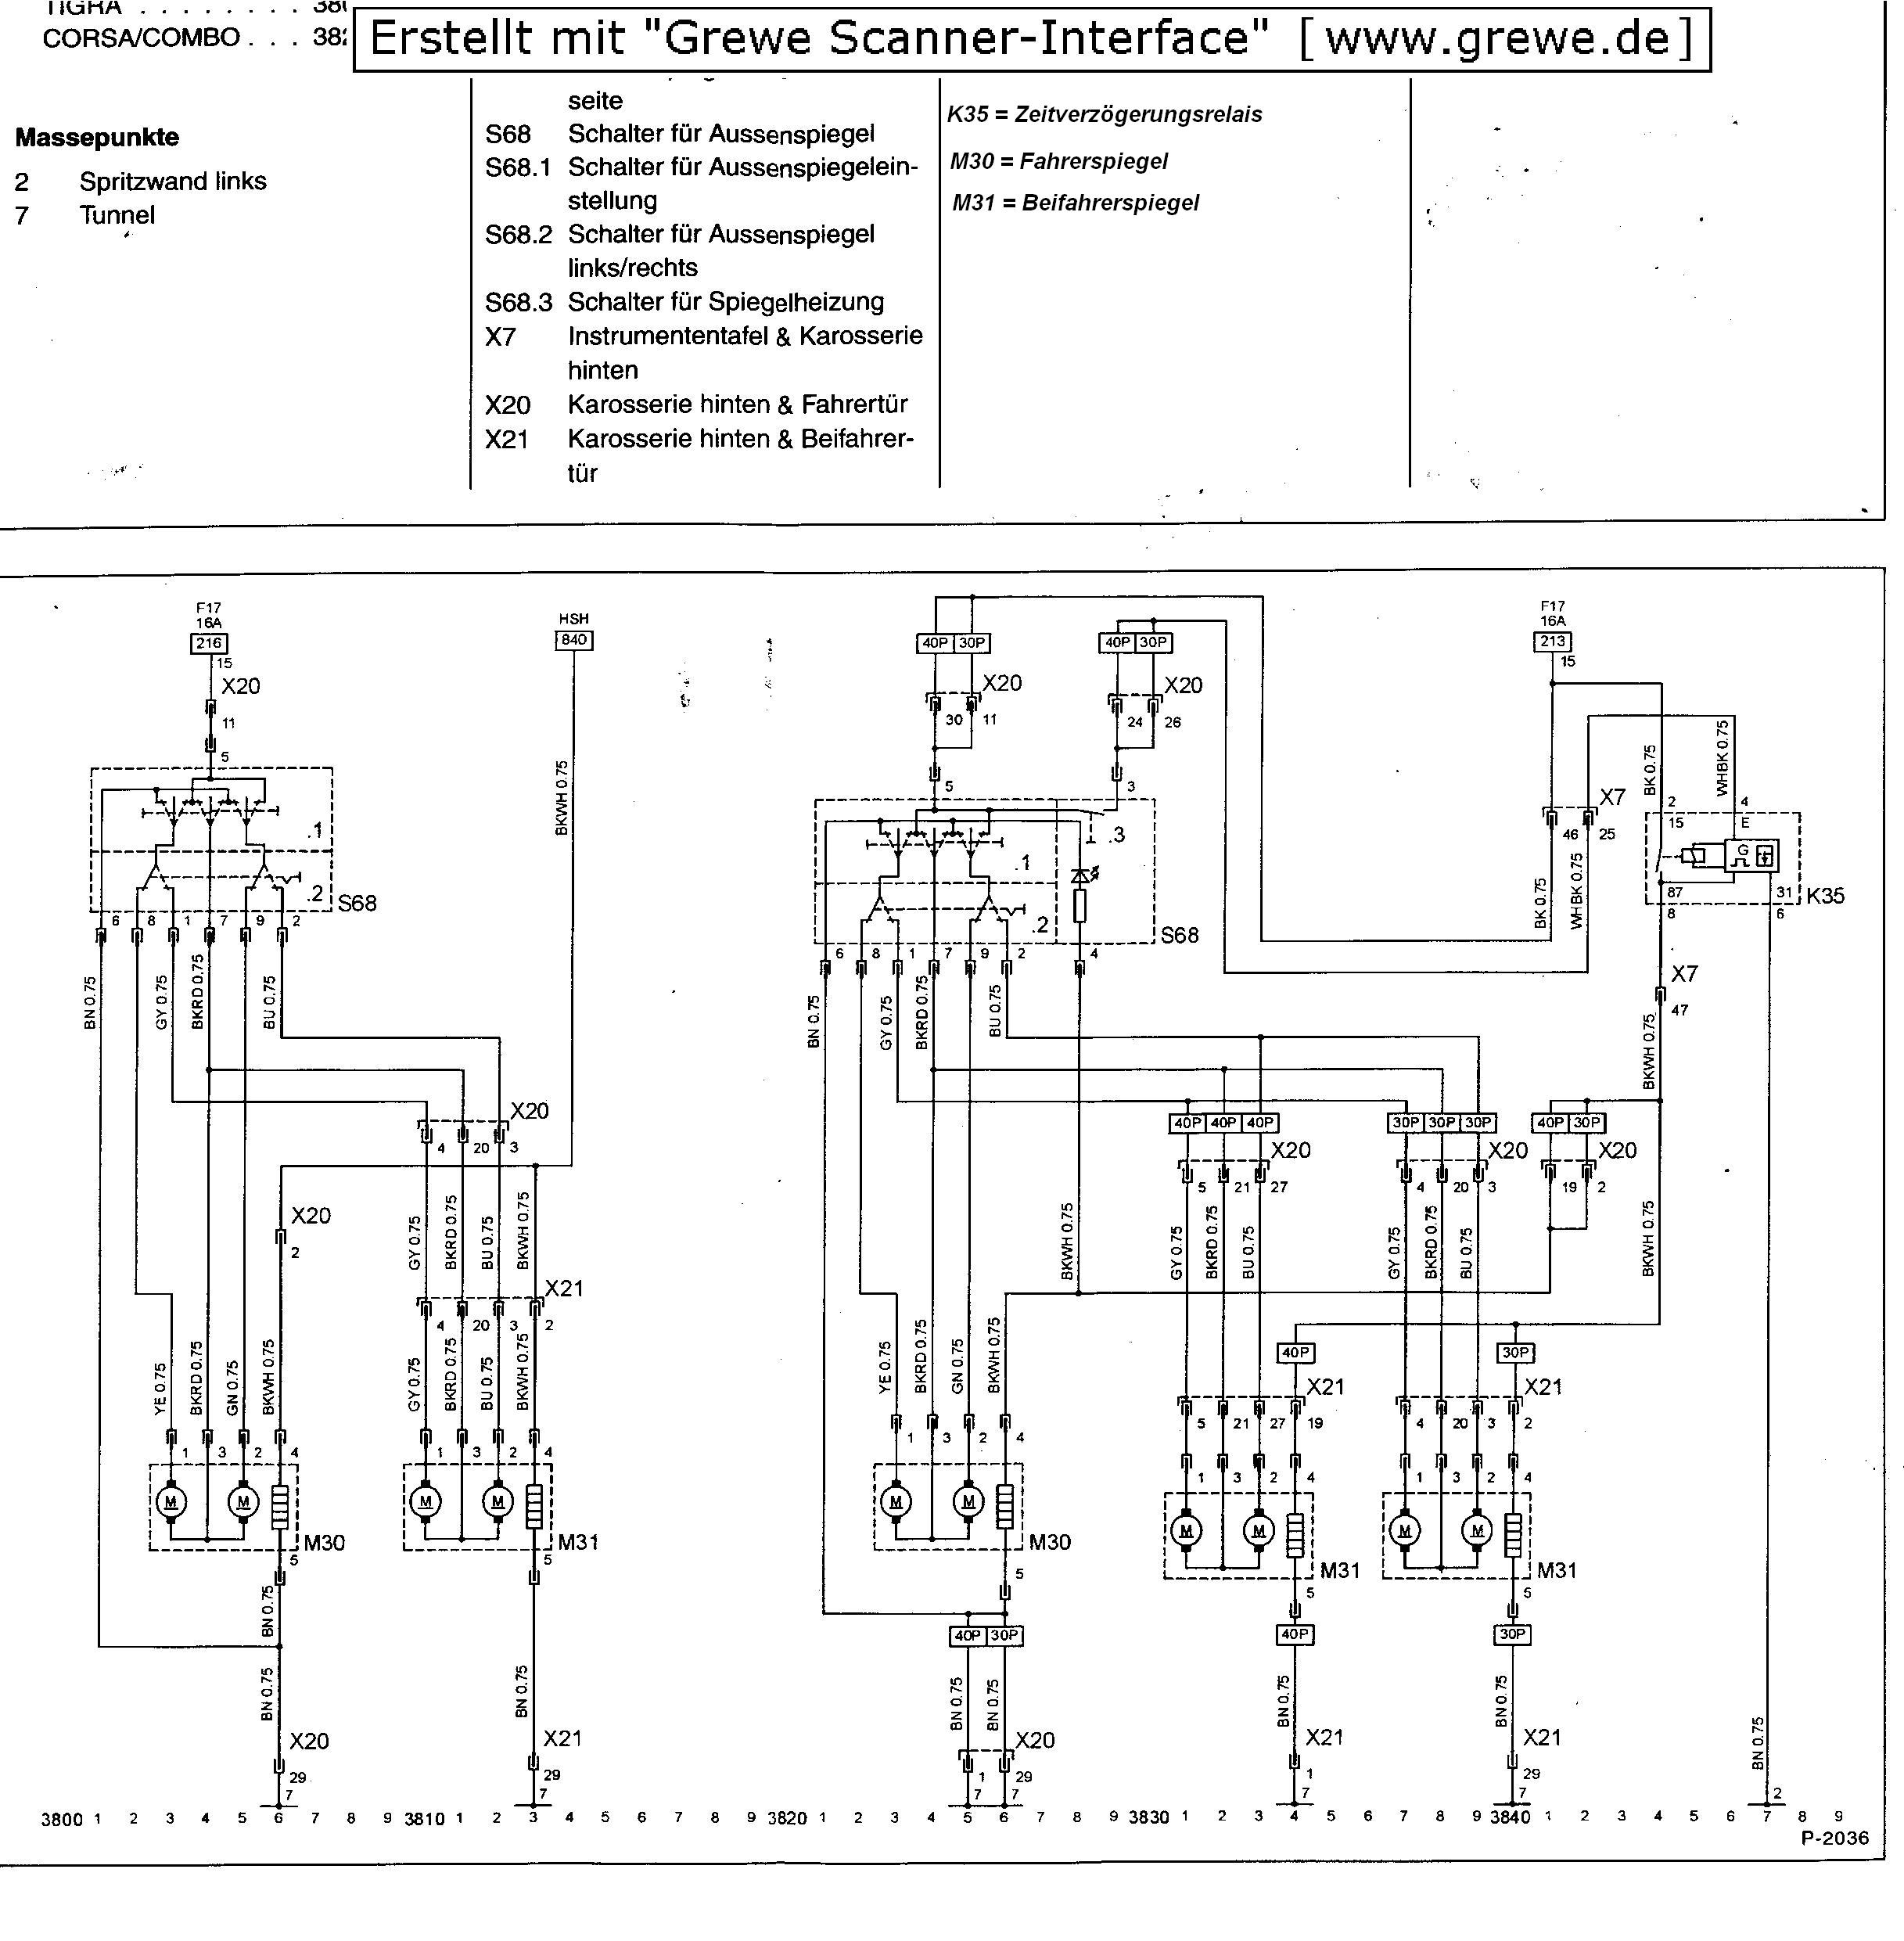 28853 Probleme  pteur Kilometrique in addition Tyre pressure monitoring system in addition Saturn Vue 2005 2007 Fuse Box Diagram further G as well Coloriage Voiture De Course Des Ann C3 A9es 80. on opel corsa c